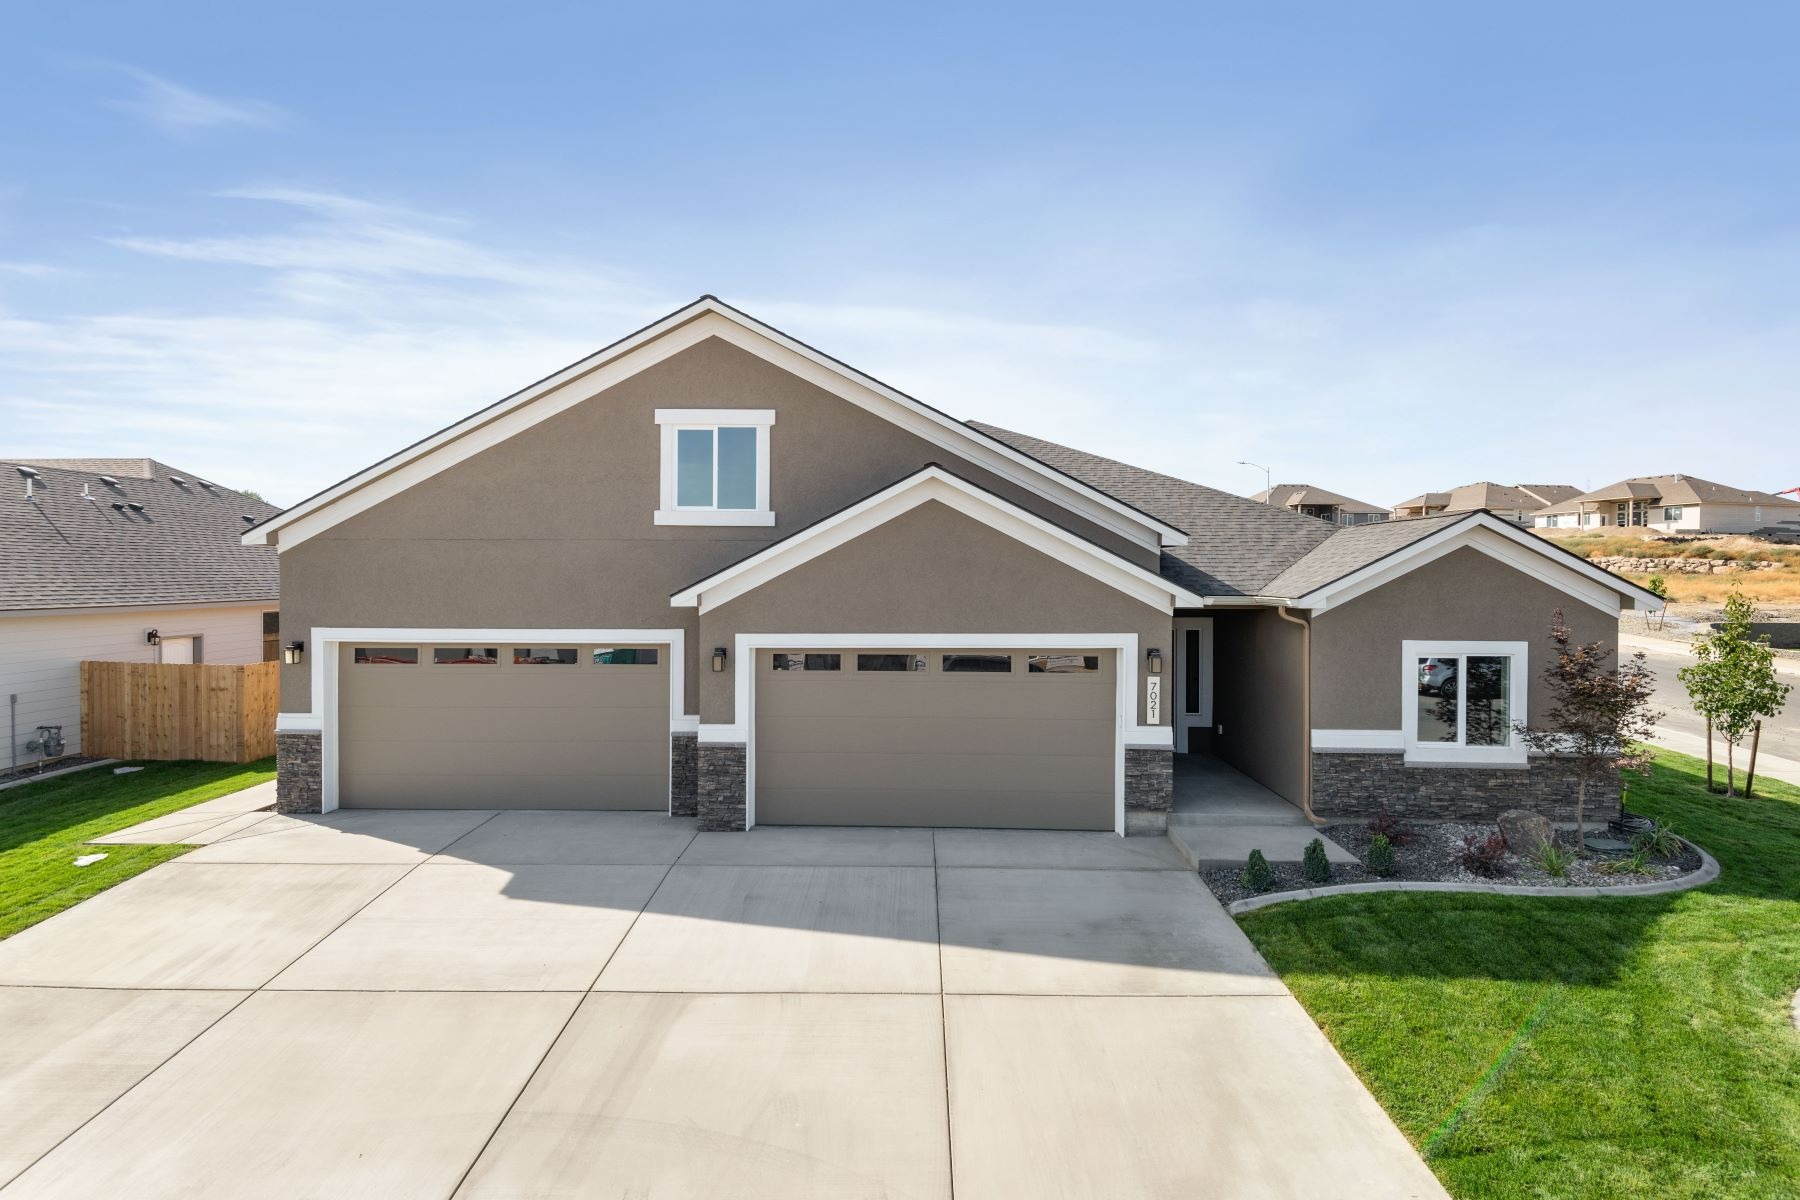 Single Family Homes for Sale at Titan Homes 7021 W 31st Place Kennewick, Washington 99338 United States